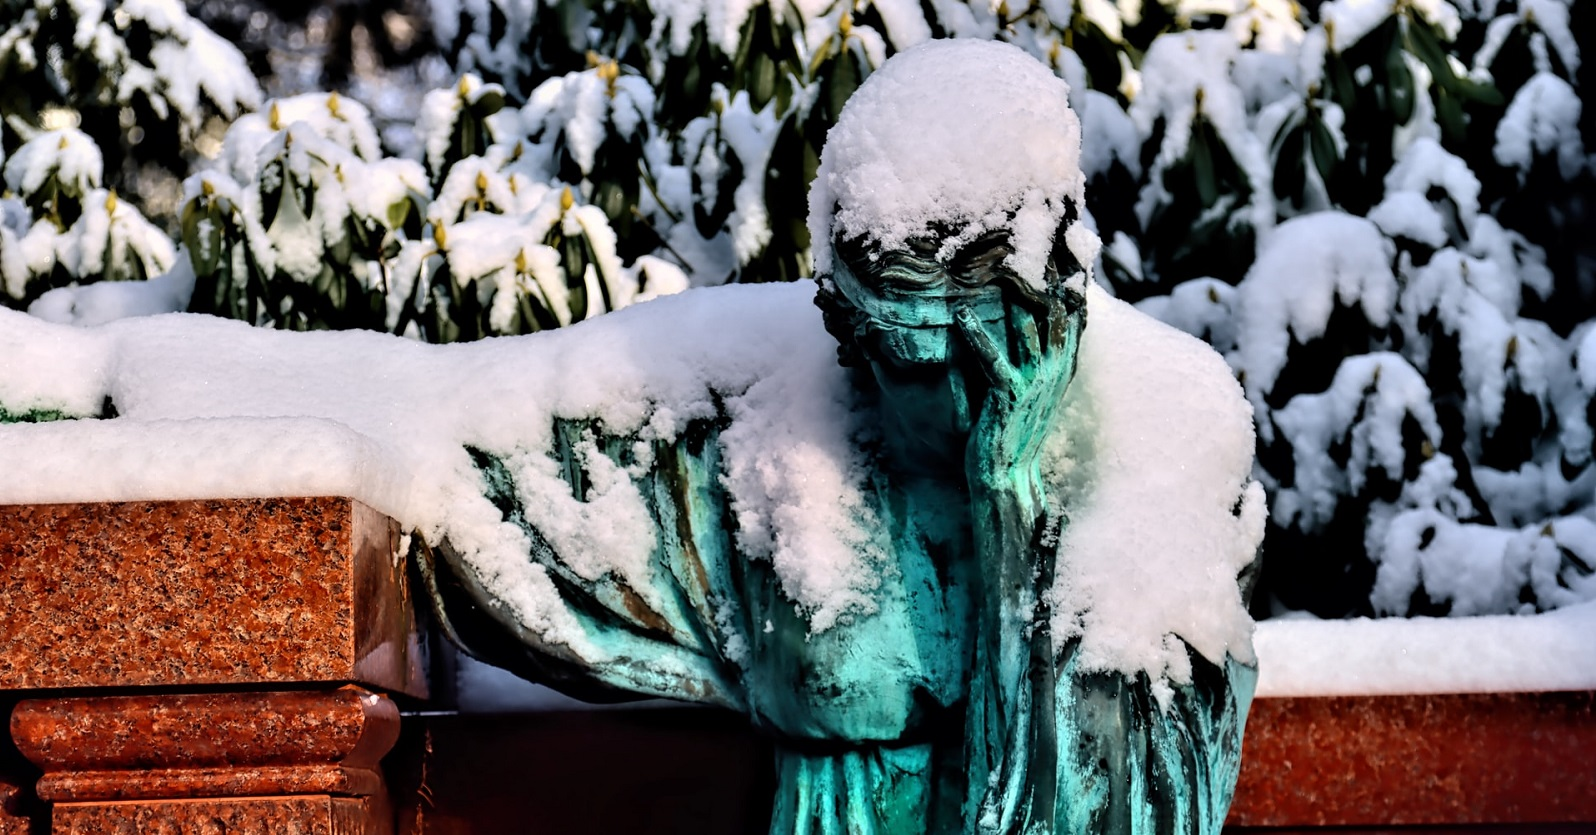 Statue of grieving figure covered with snow